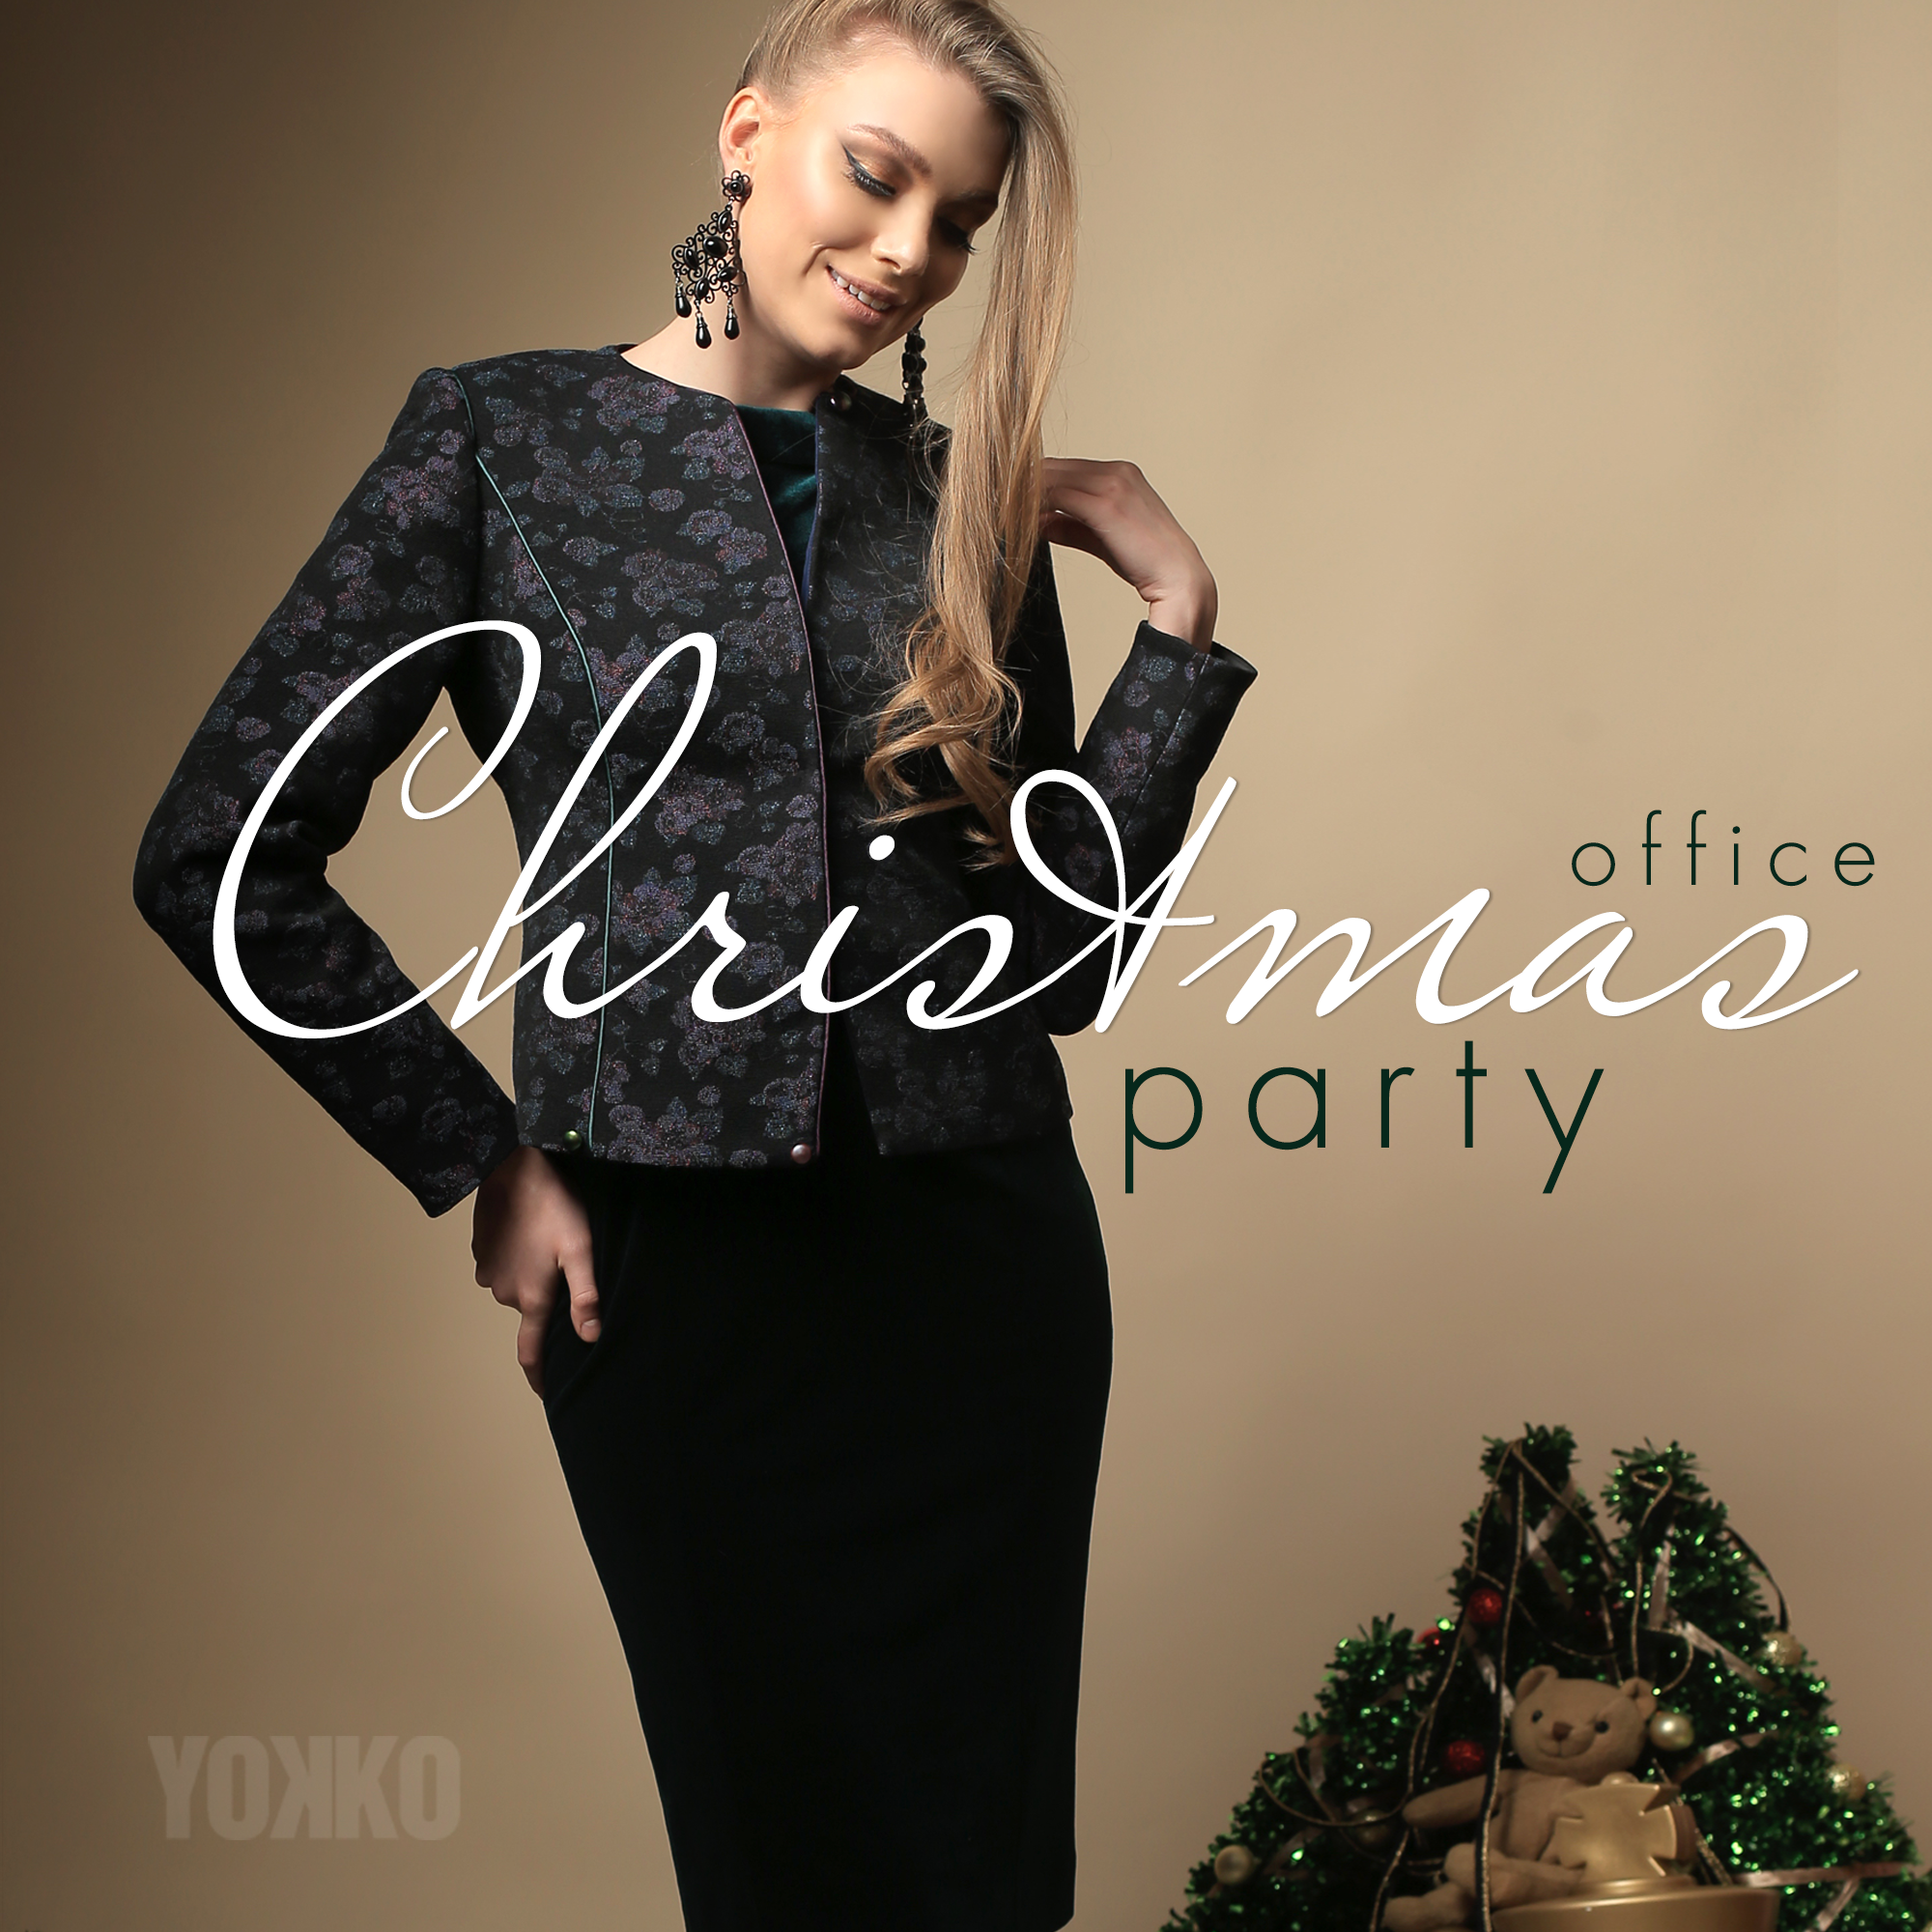 Office Christmas Party #yokko #fashion #christmascollection